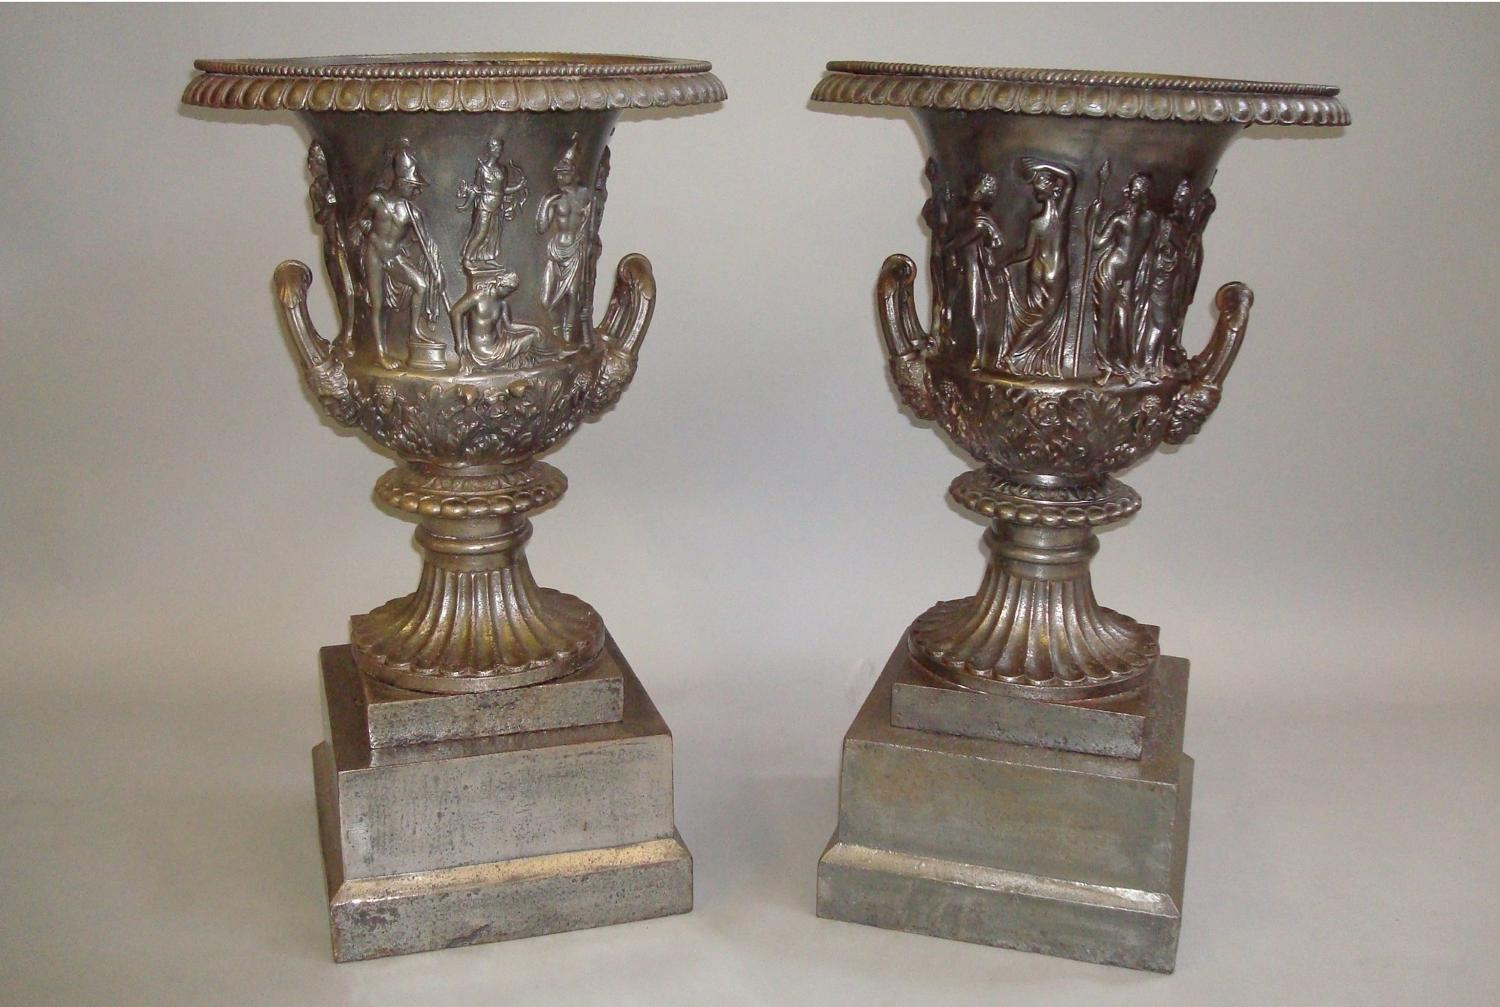 C19th pair of burnished cast iron campanan urns